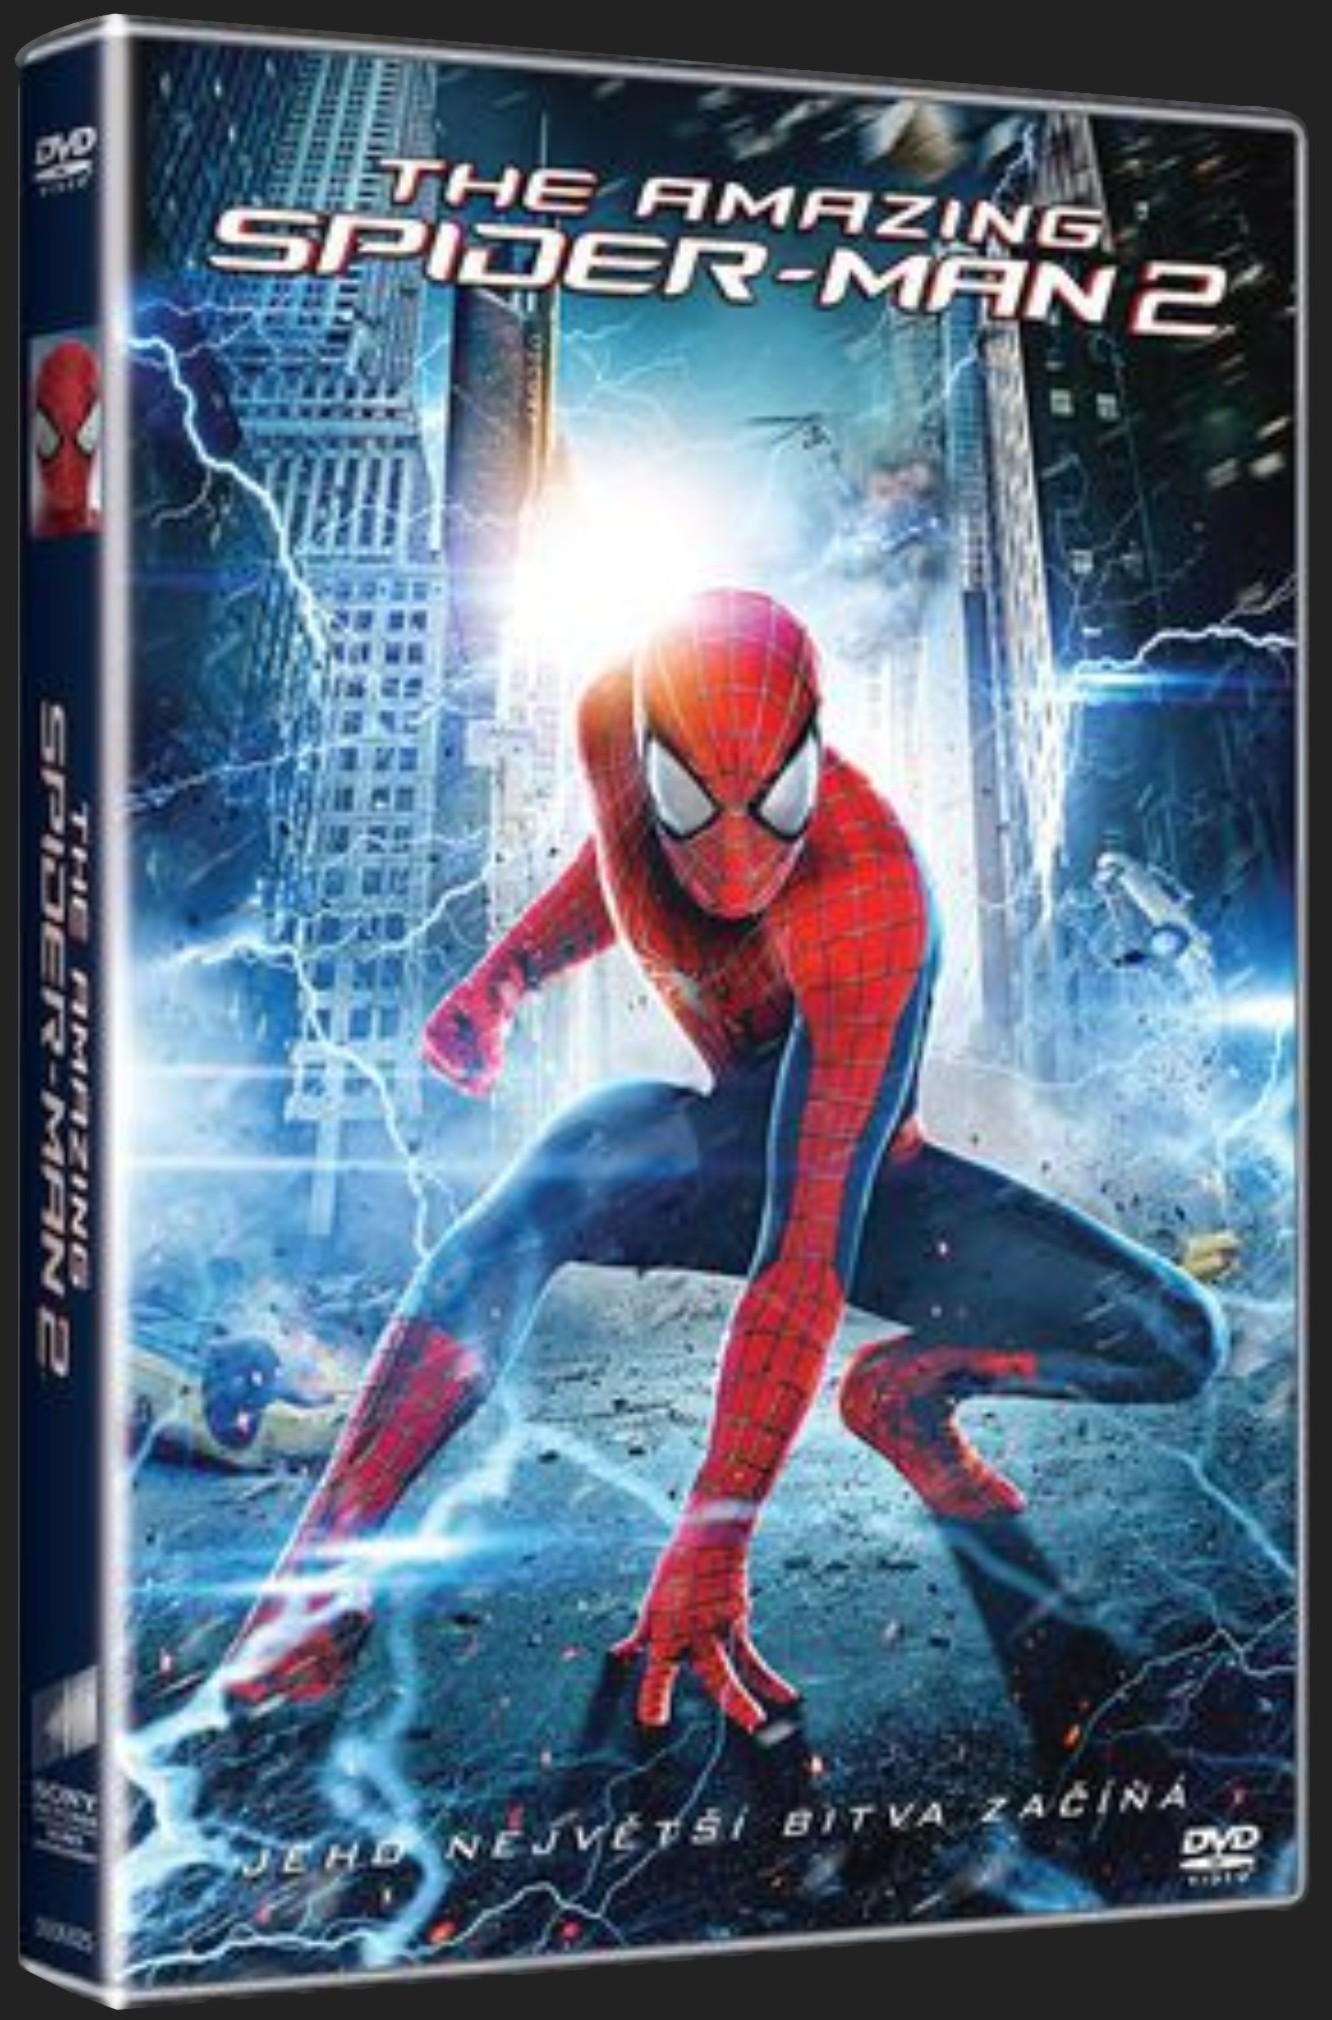 AMAZING SPIDER-MAN 2 - DVD